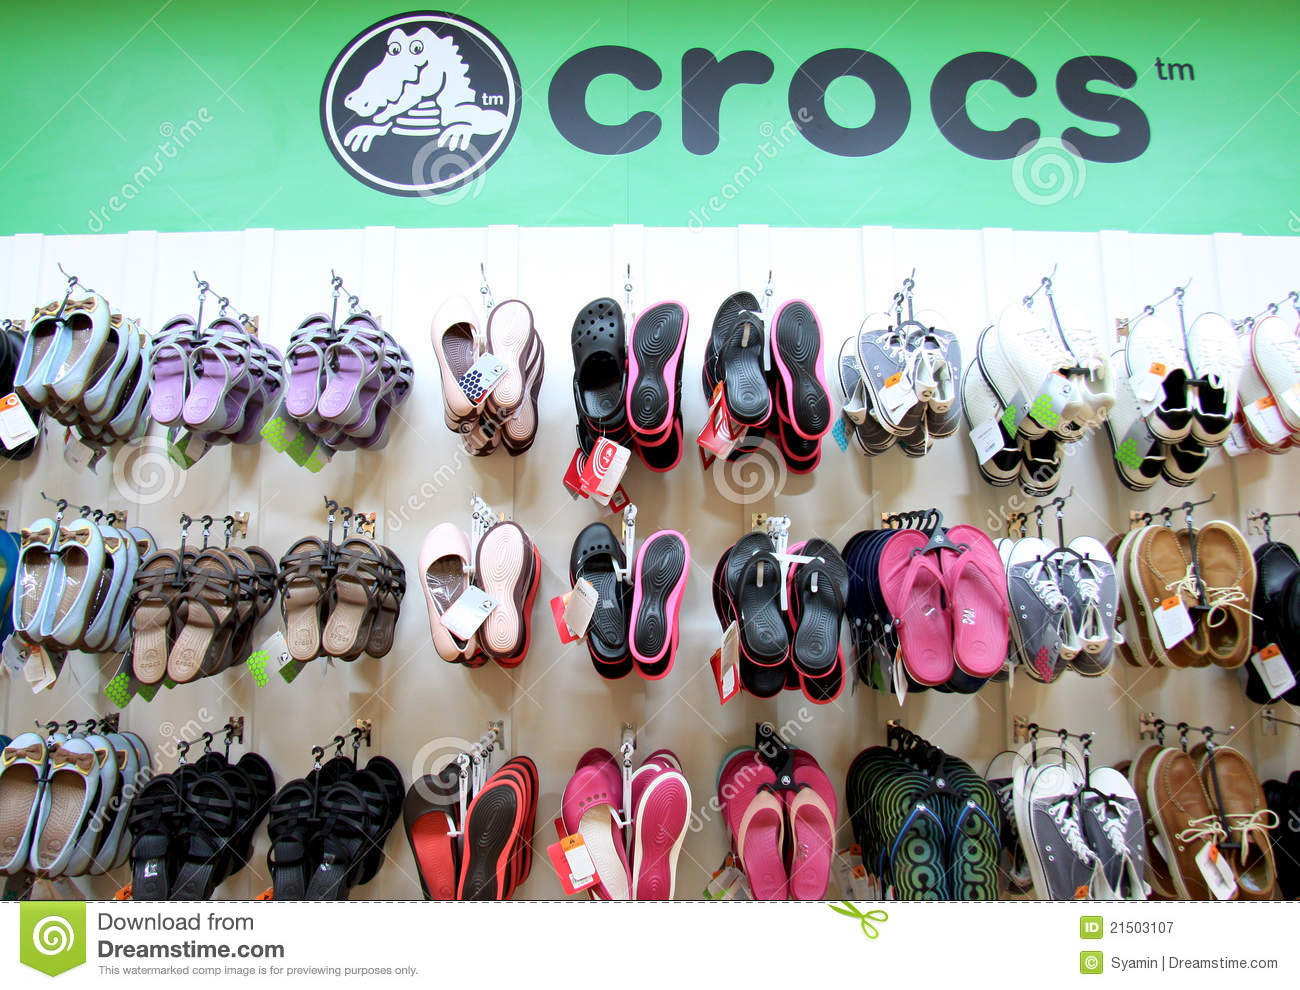 5de5efbedc2b48 Crocs shop displaying its popular product which is mainly casual footwear  of various style and design suitable for all ages. Photo taken in Brunei on  9th ...